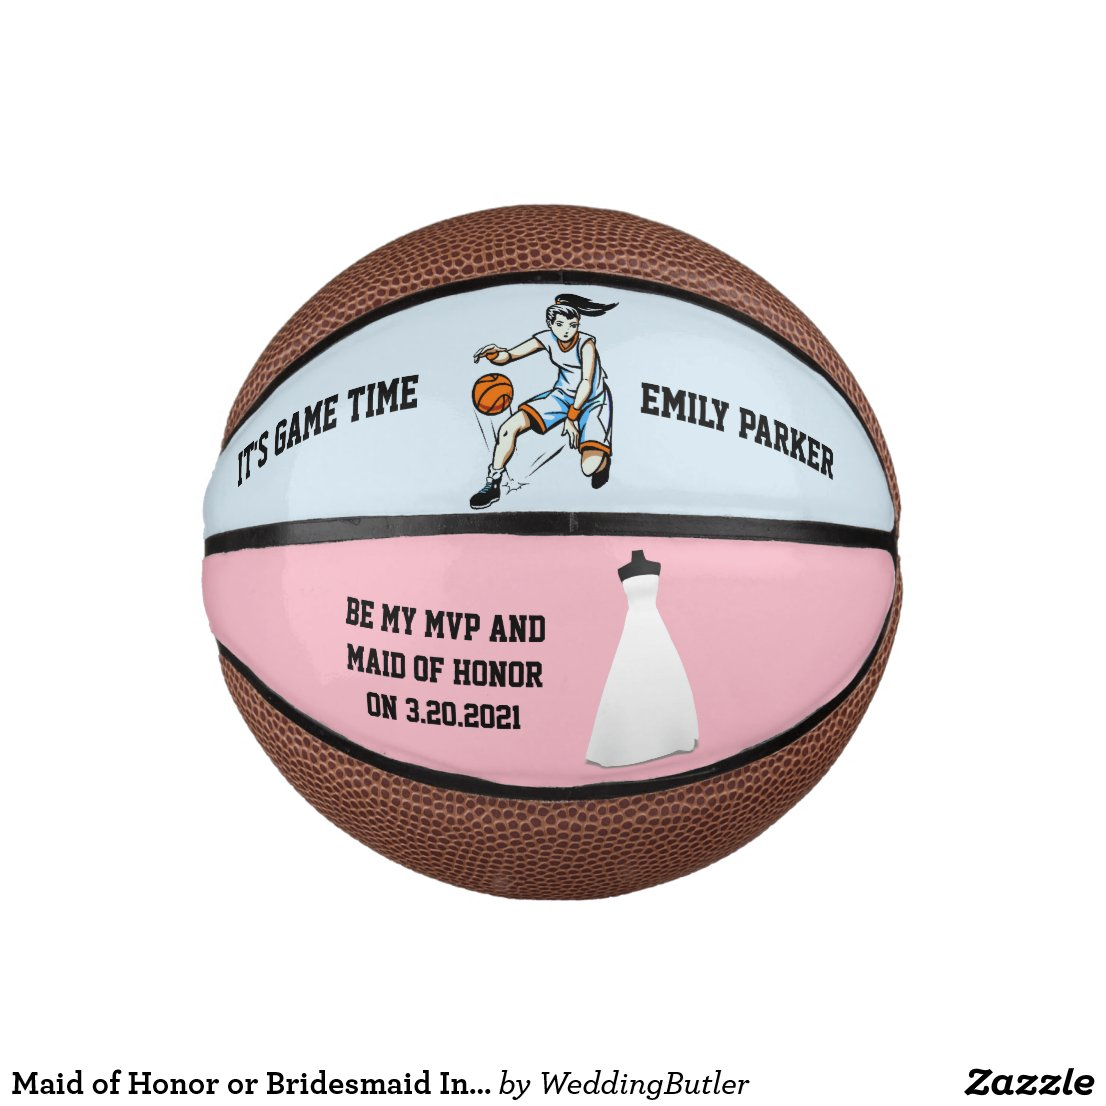 Maid of Honor or Bridesmaid Invite Mini Basketball